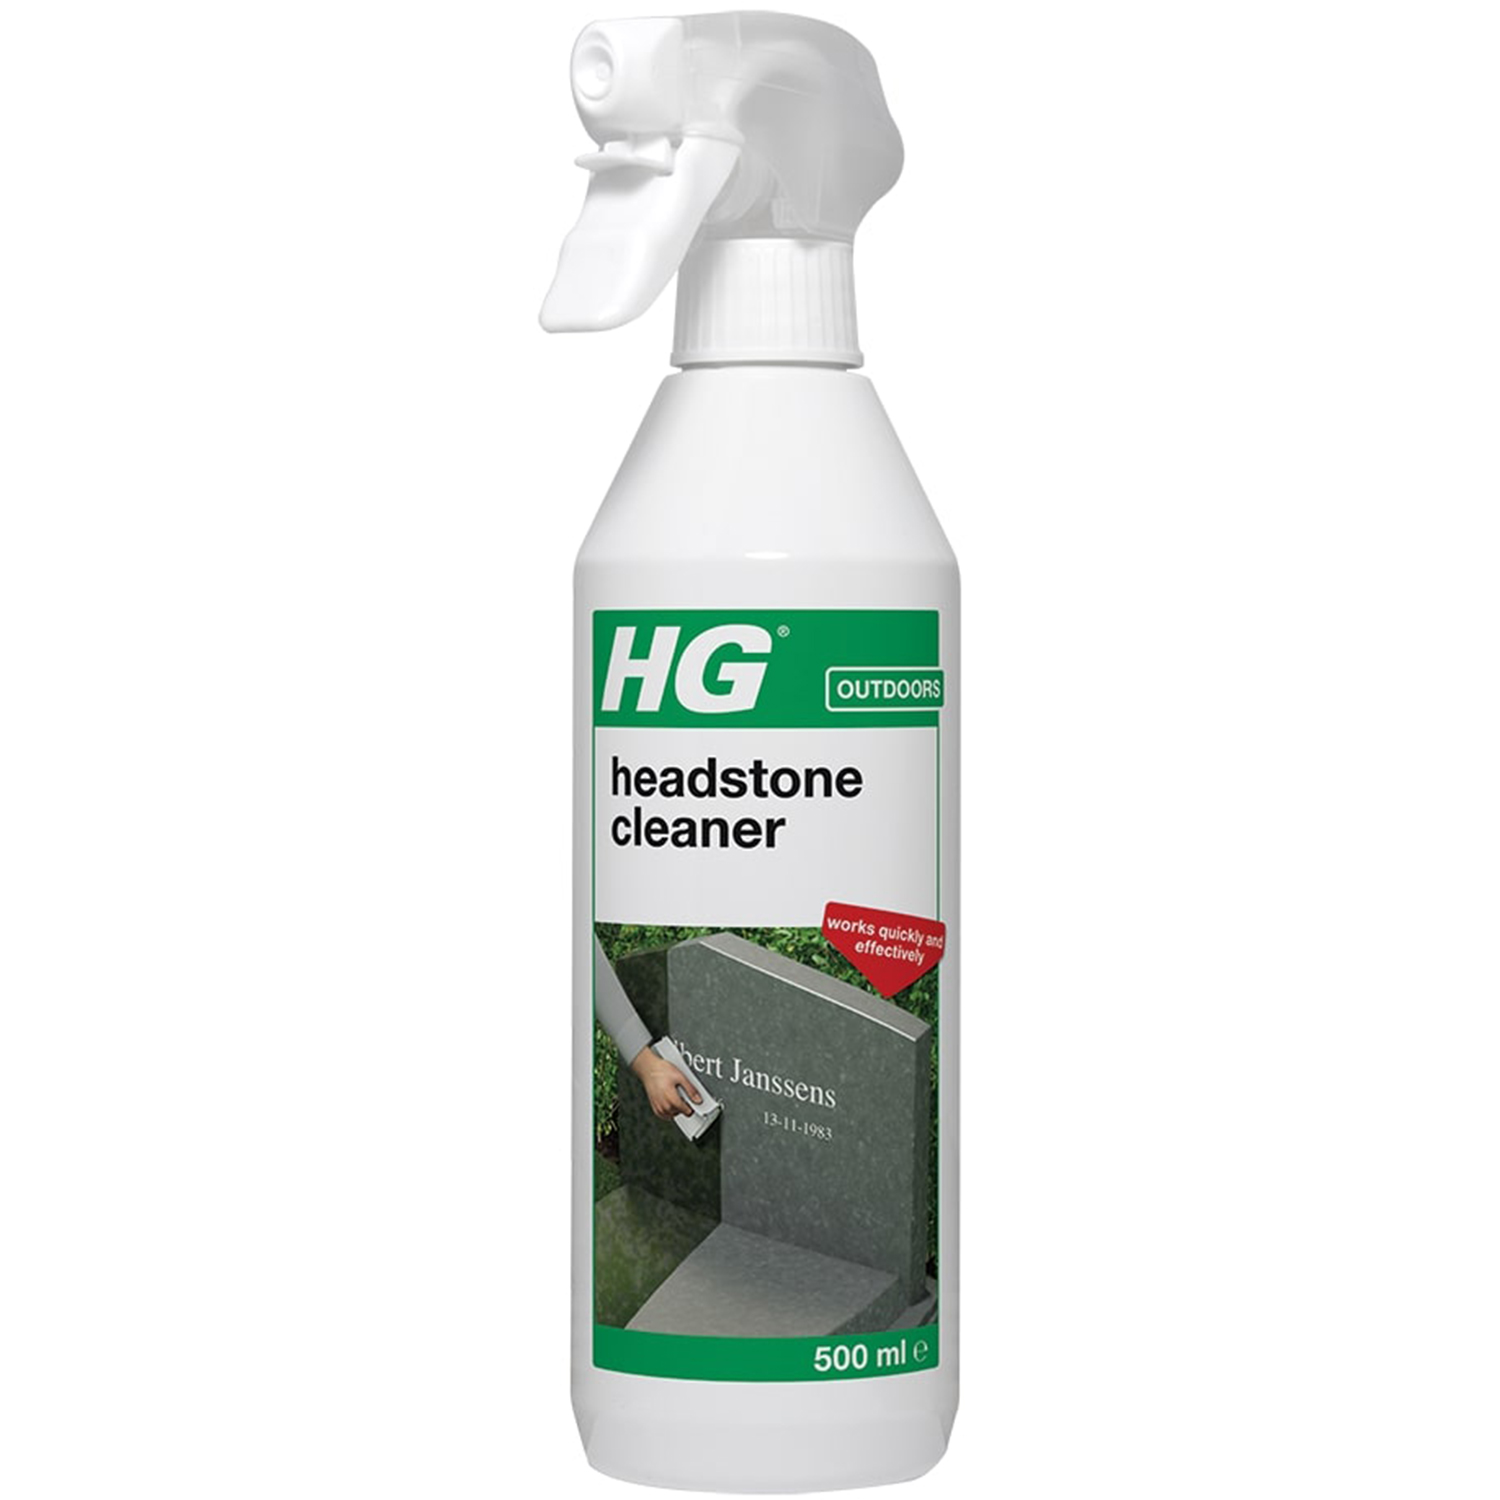 Hg chandelier spray cleaner musethecollective hg headstone cleaning spray 500ml home more chandelier arubaitofo Images